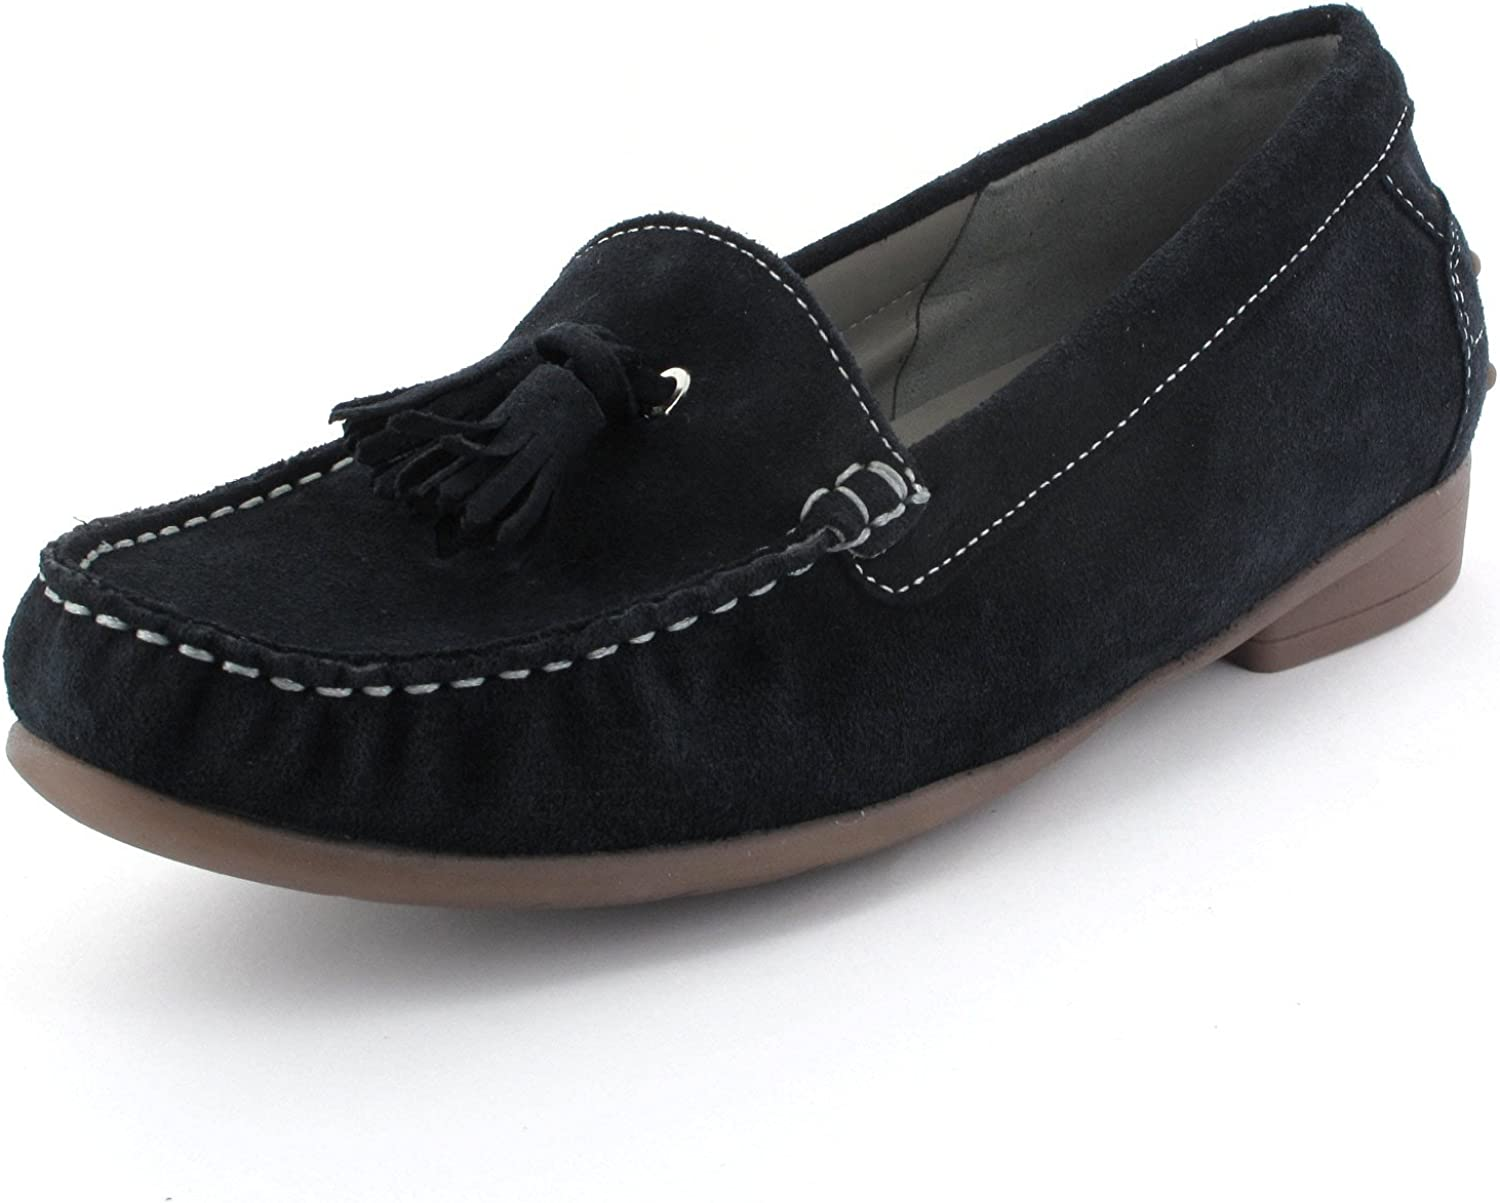 ARA Damen Slipper 30763-05 12-30763-05 blau 107826